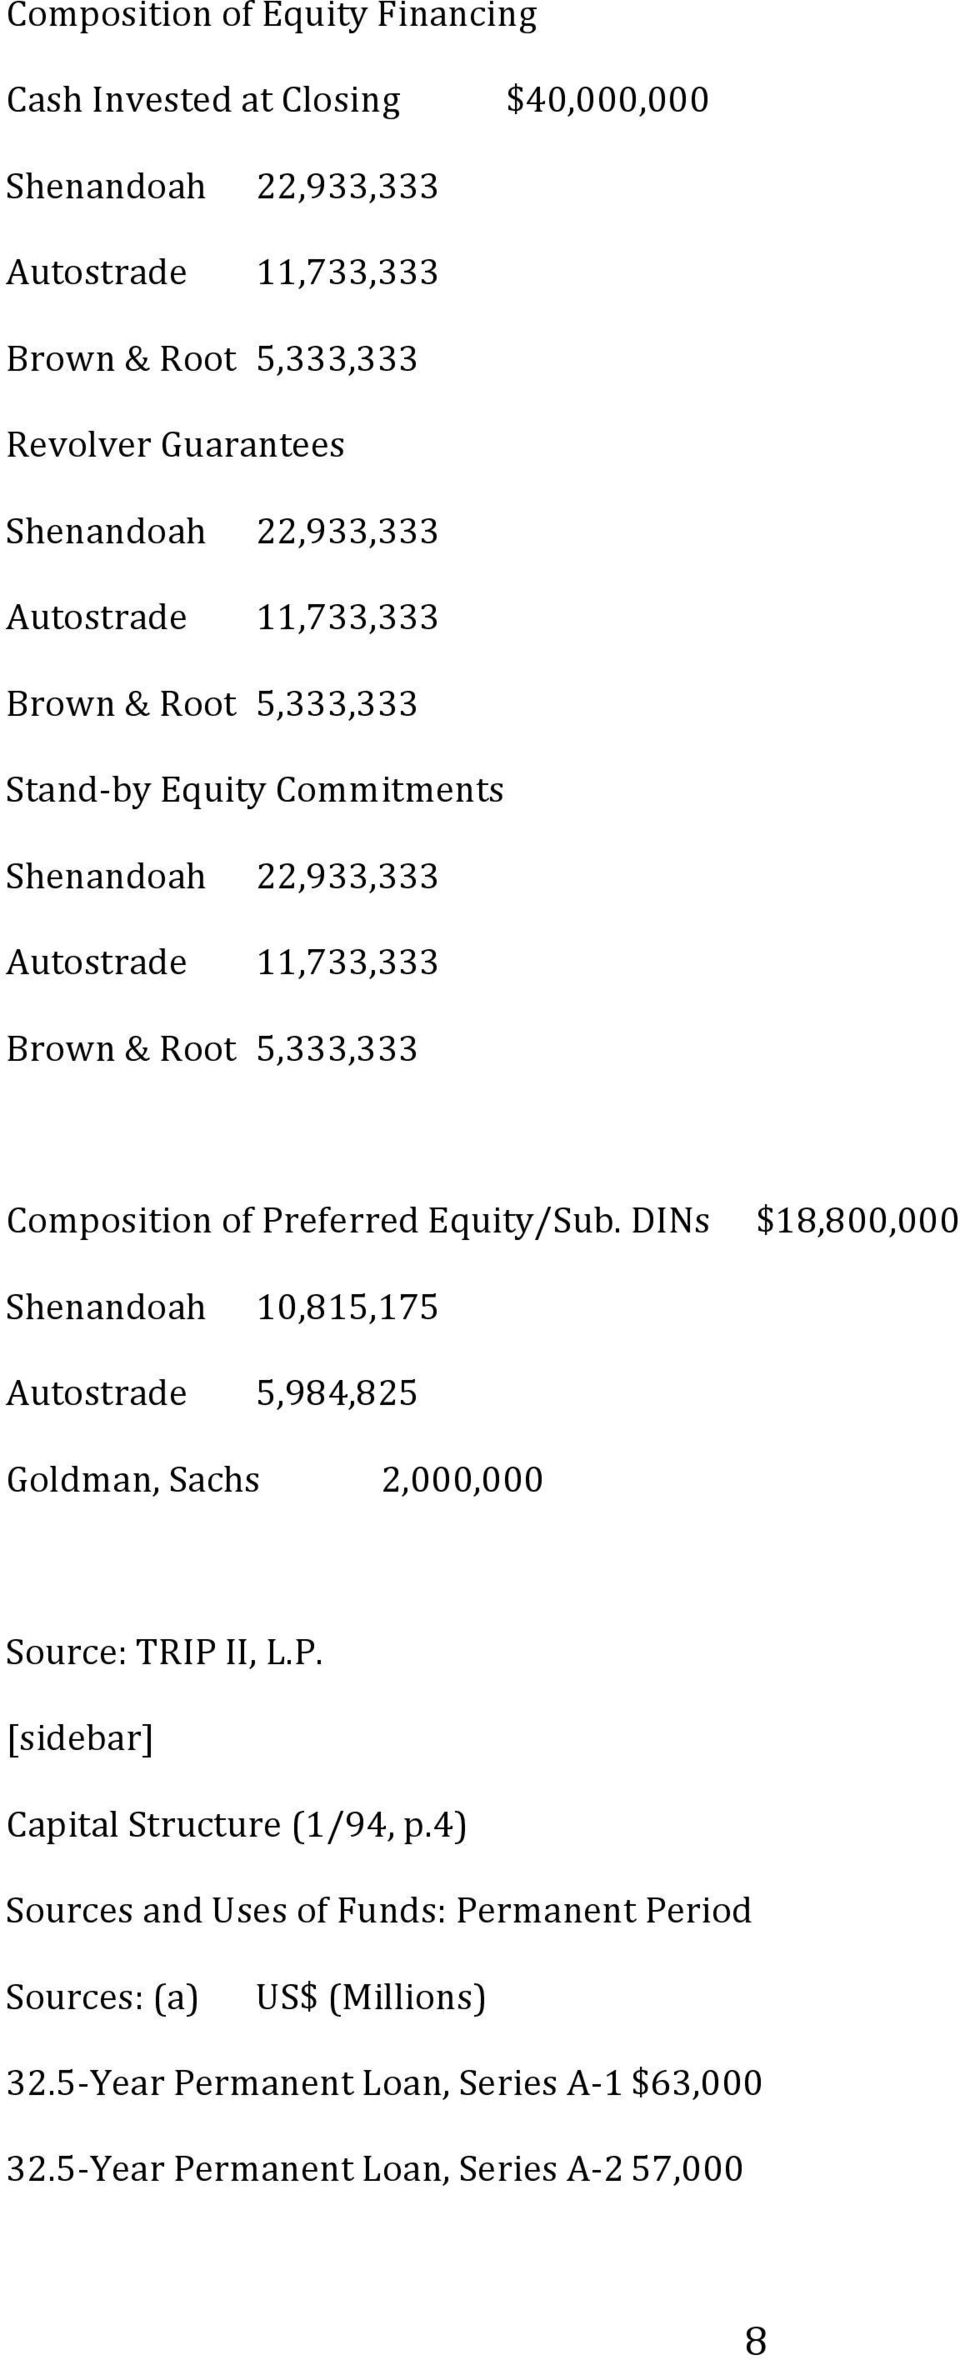 Preferred Equity/Sub. DINs $18,800,000 Shenandoah Autostrade 10,815,175 5,984,825 Goldman, Sachs 2,000,000 Source: TRIP II, L.P. [sidebar] Capital Structure (1/94, p.